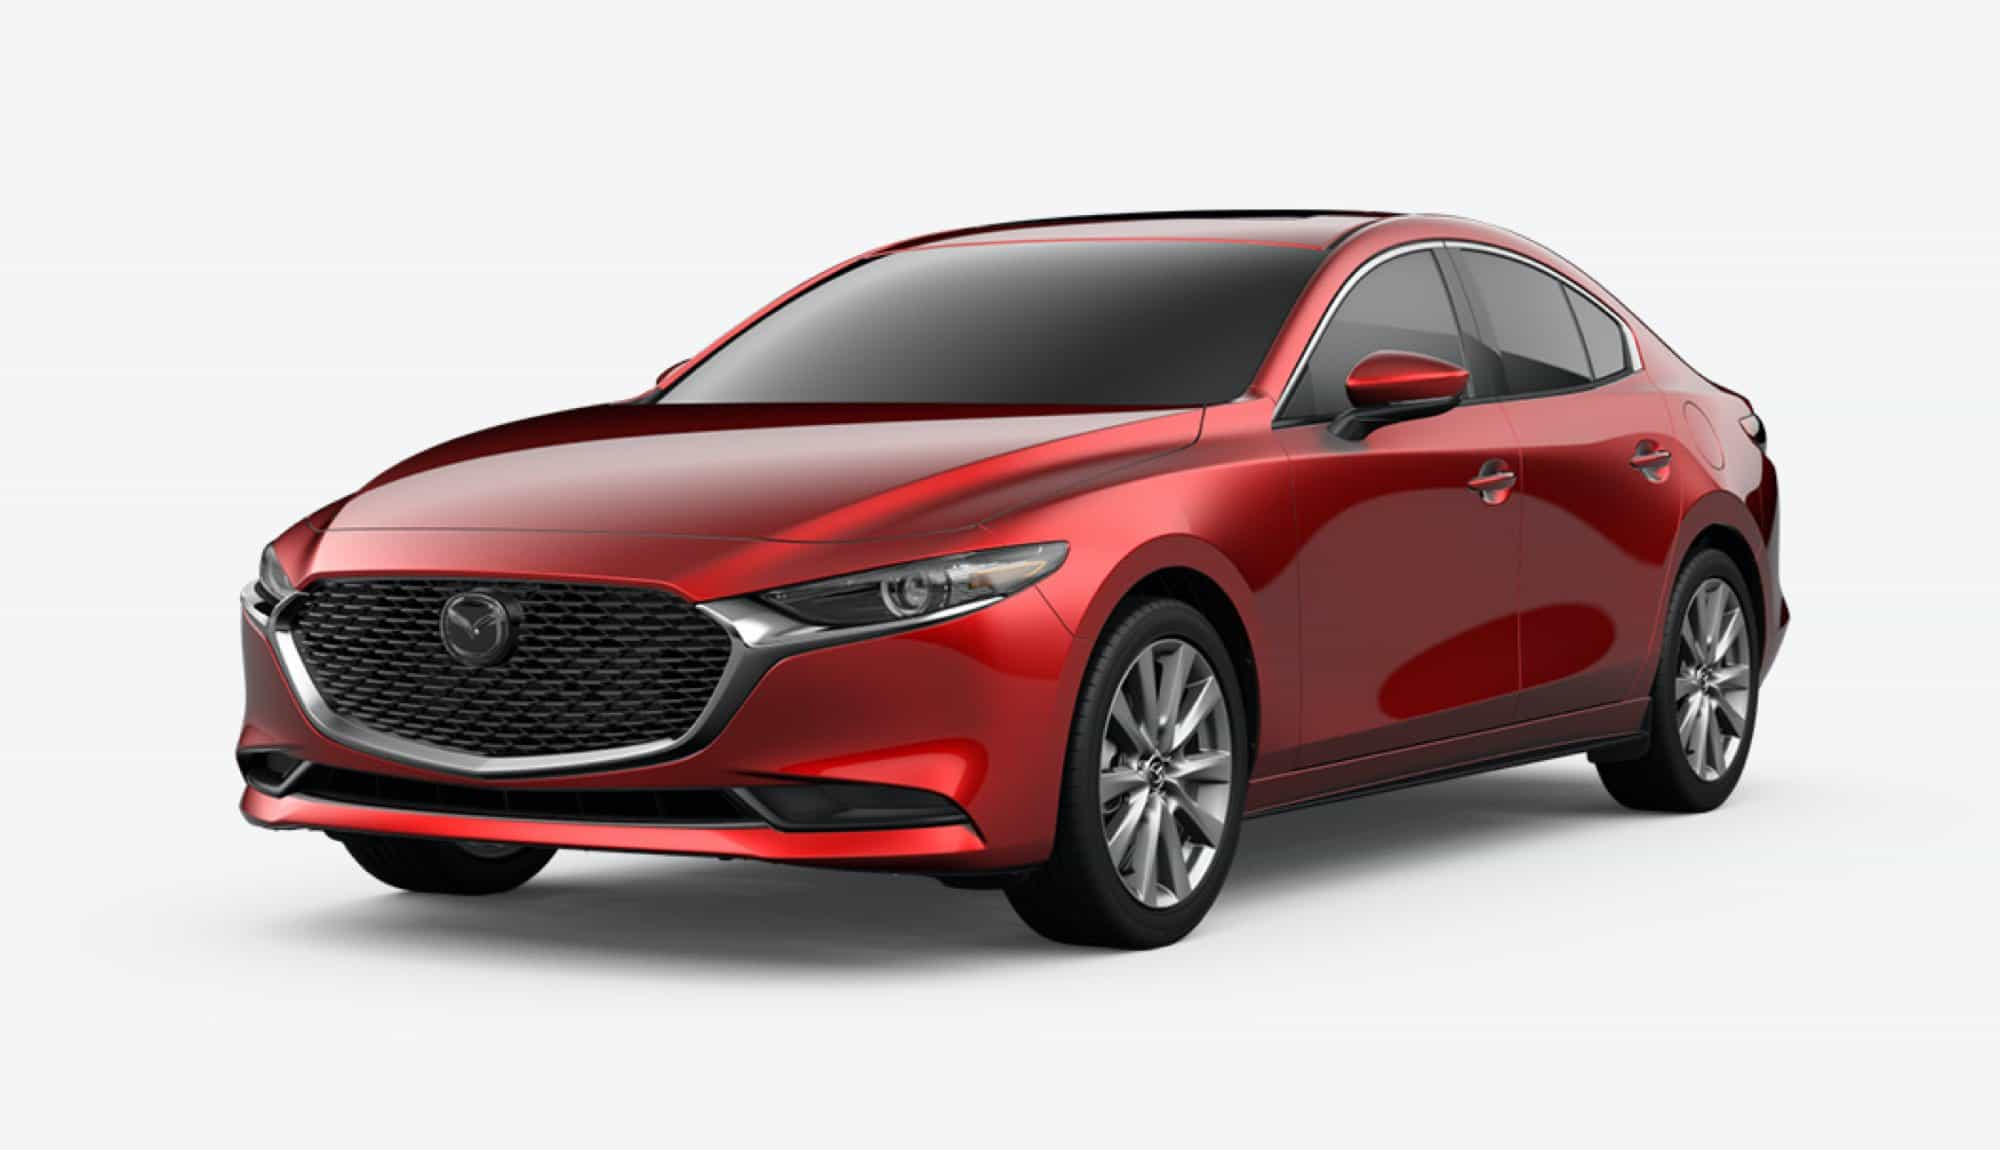 2020 Mazda3 Sedan, Soul Red Crystal Metallic